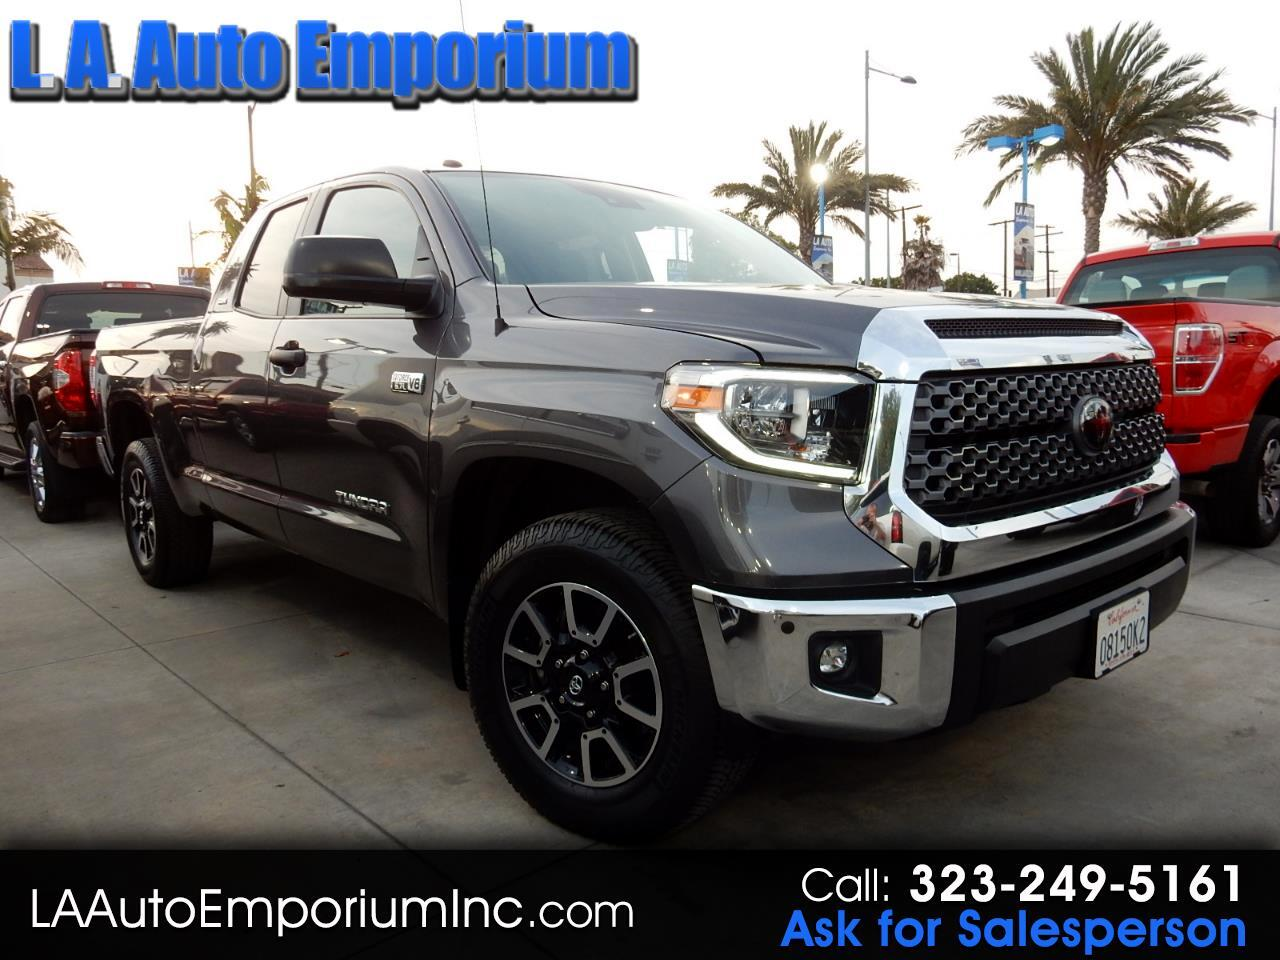 Toyota Tundra 2WD SR5 Double Cab 6.5' Bed 5.7L (Natl) 2018